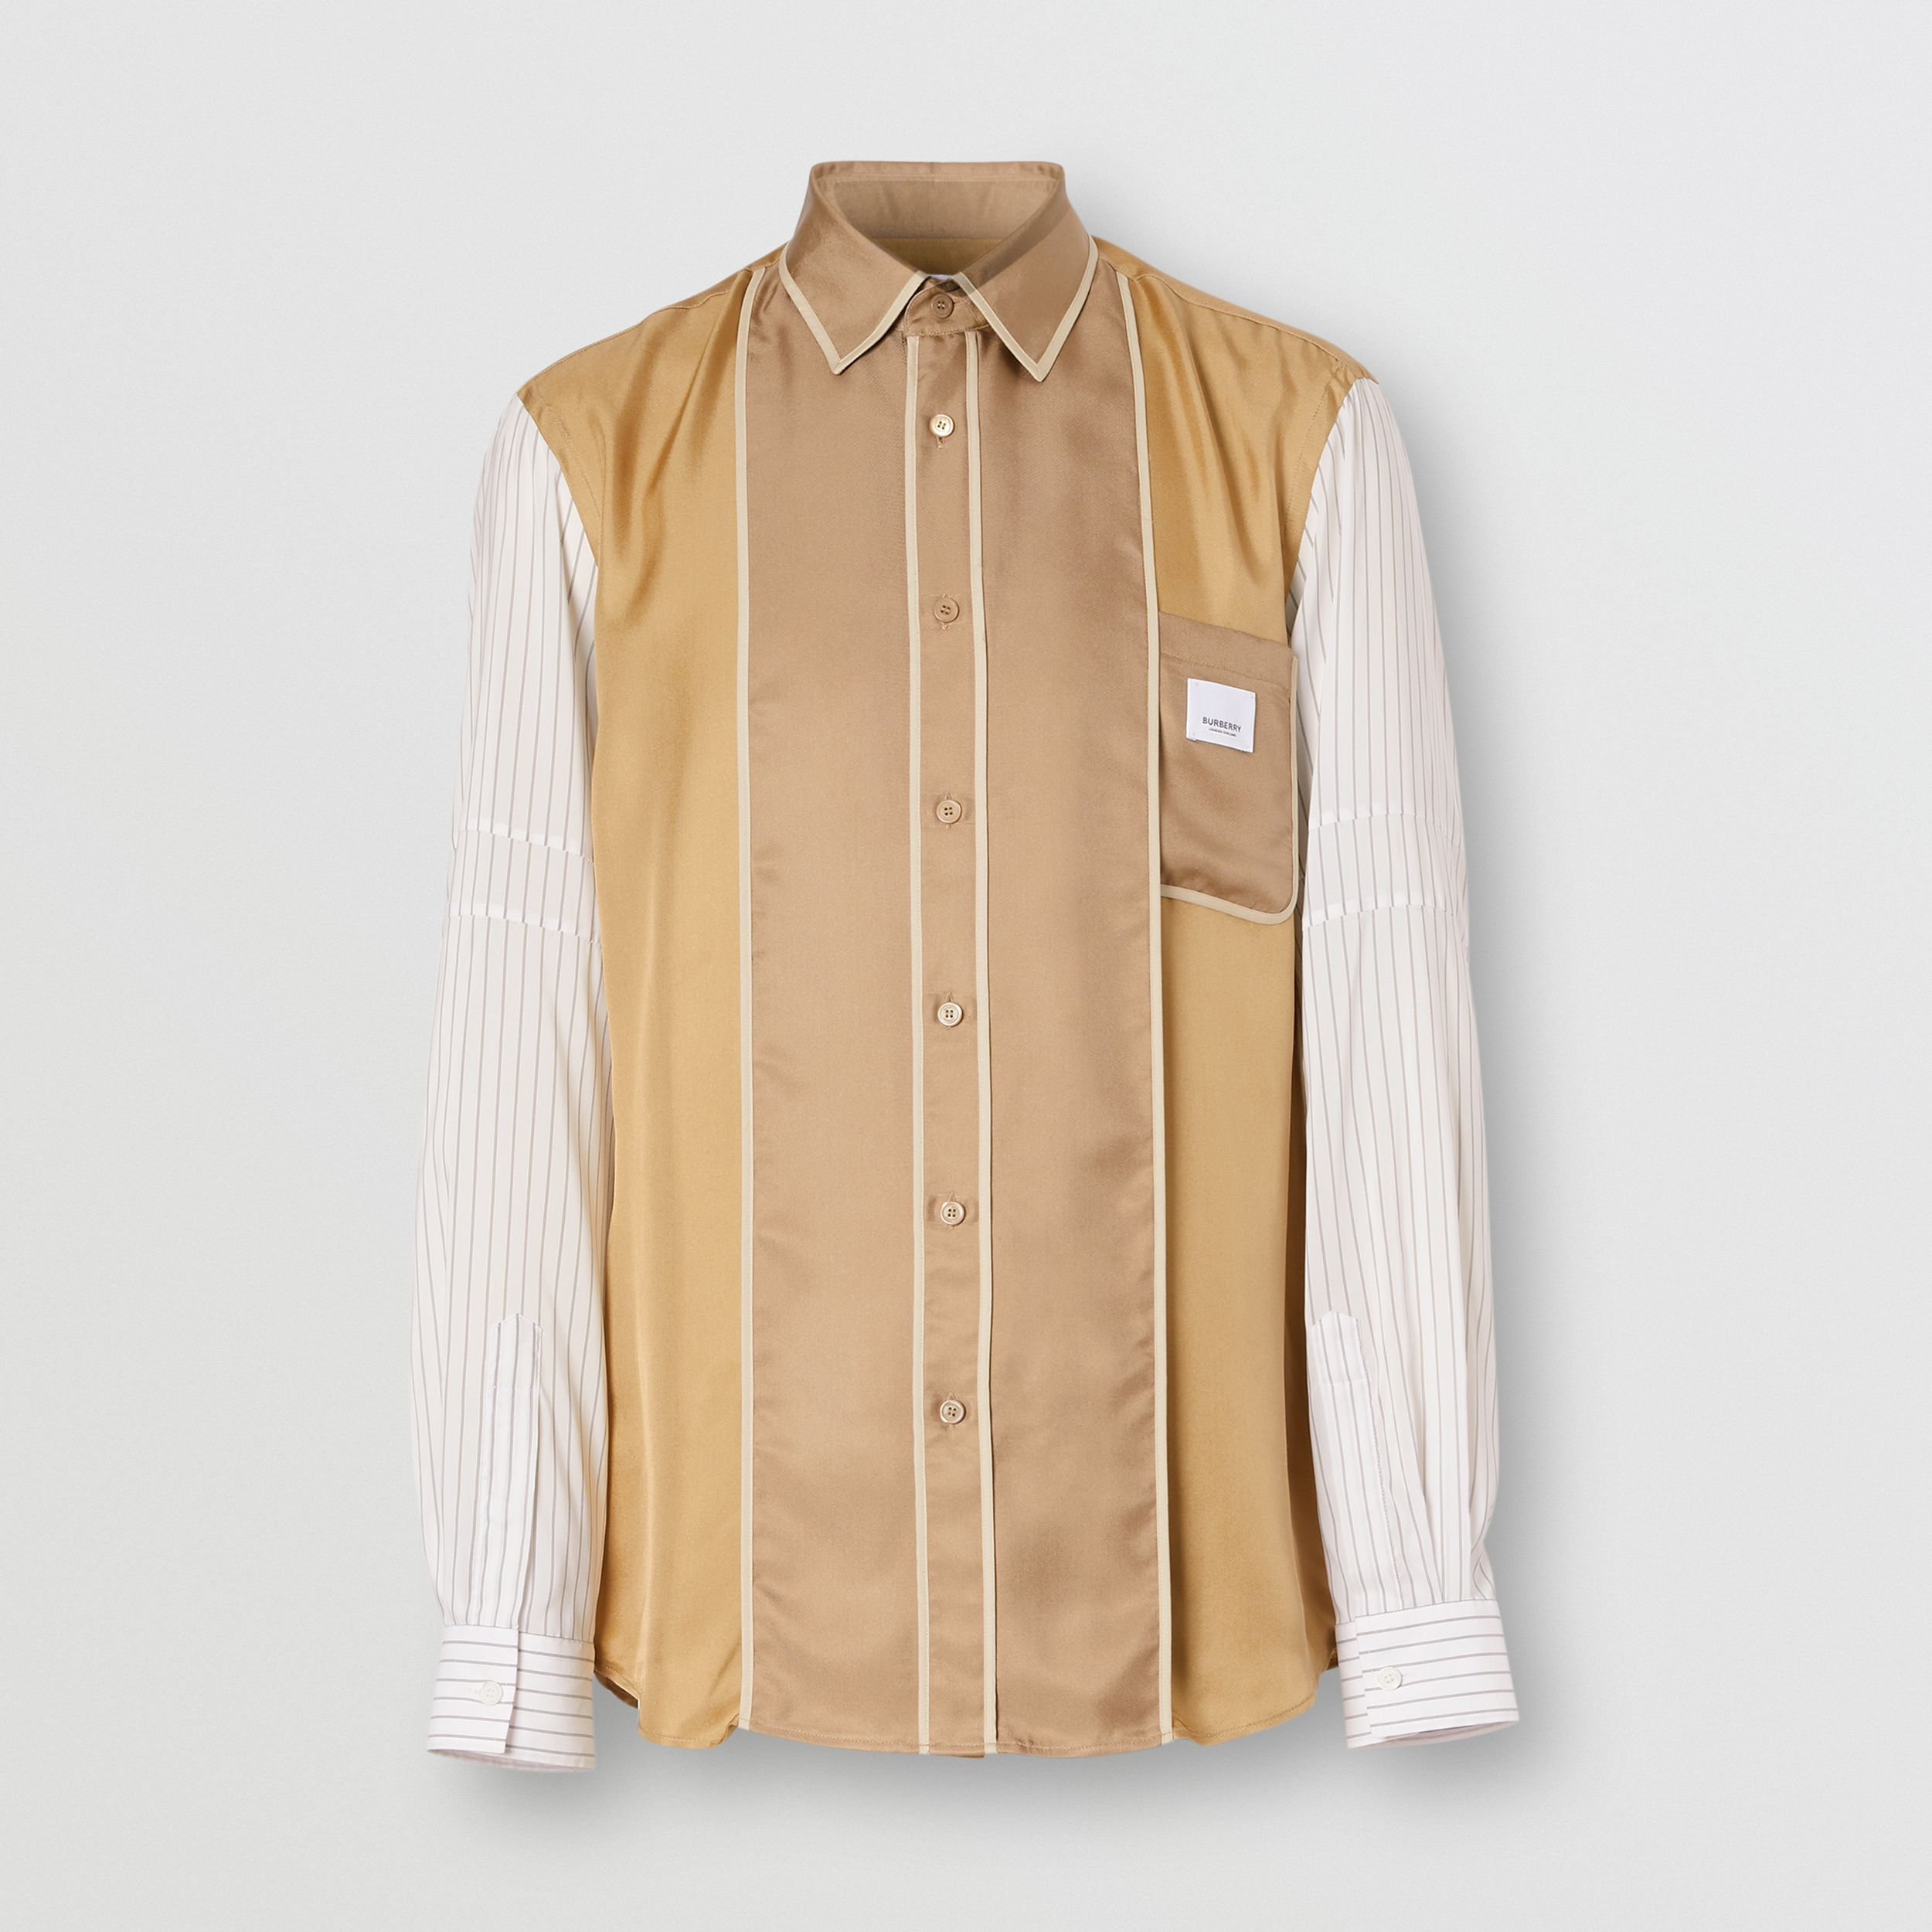 Classic Fit Panelled Silk and Pinstriped Shirt in Camel | Burberry - 4